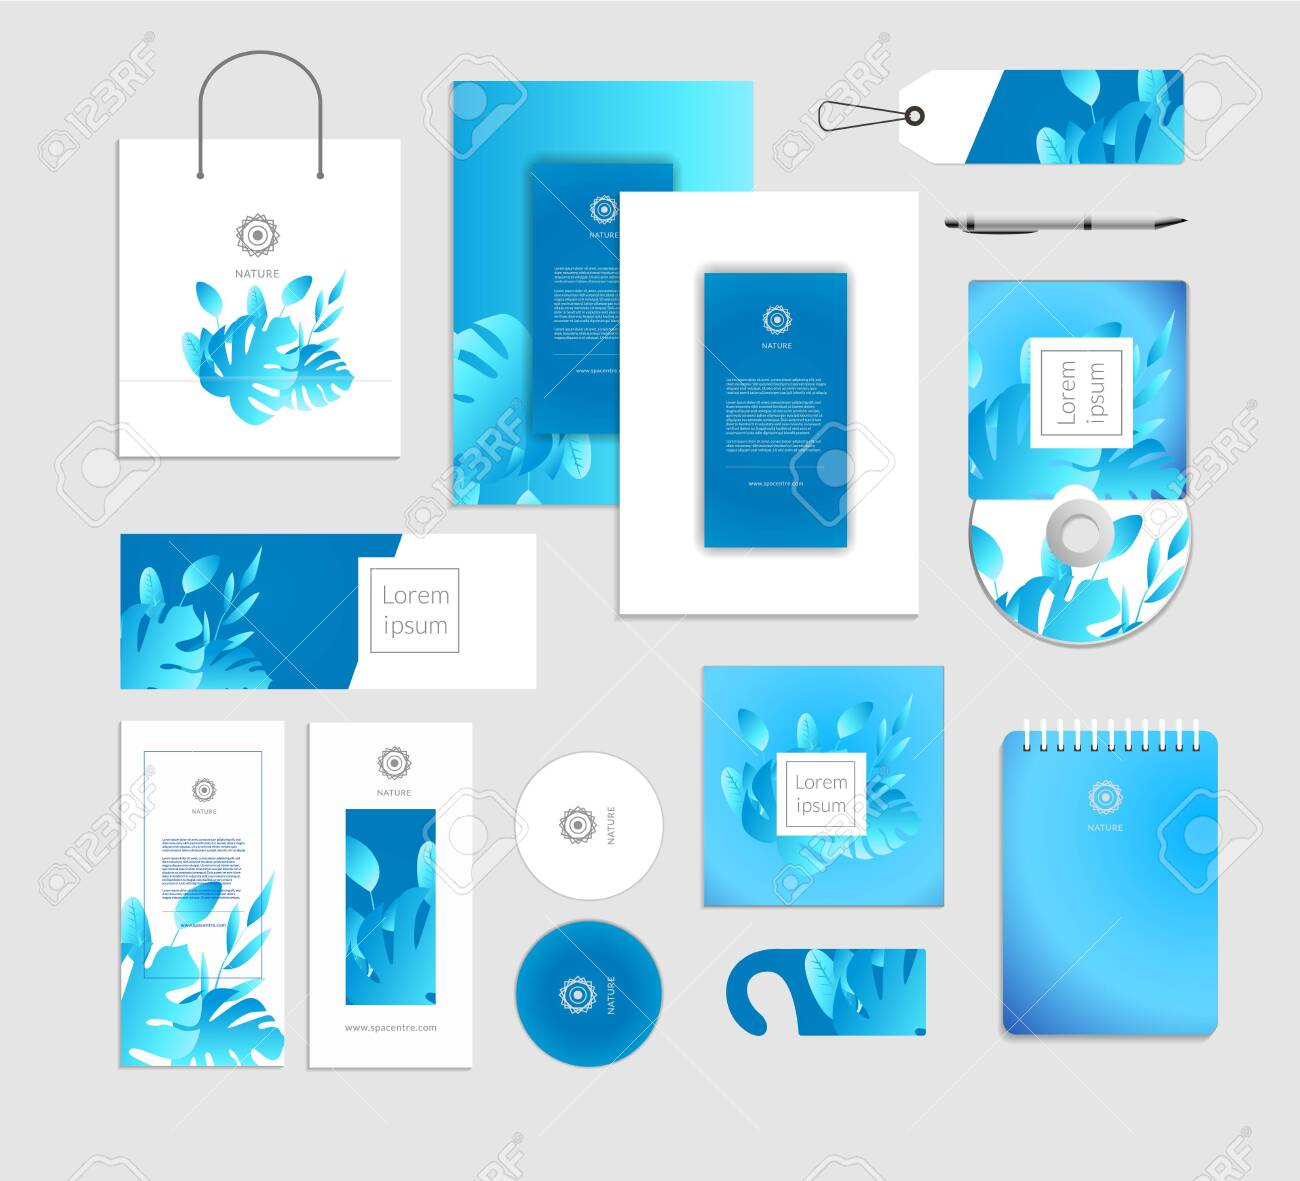 Corporate identity. Tropical leaves luxury concept. - 122350690